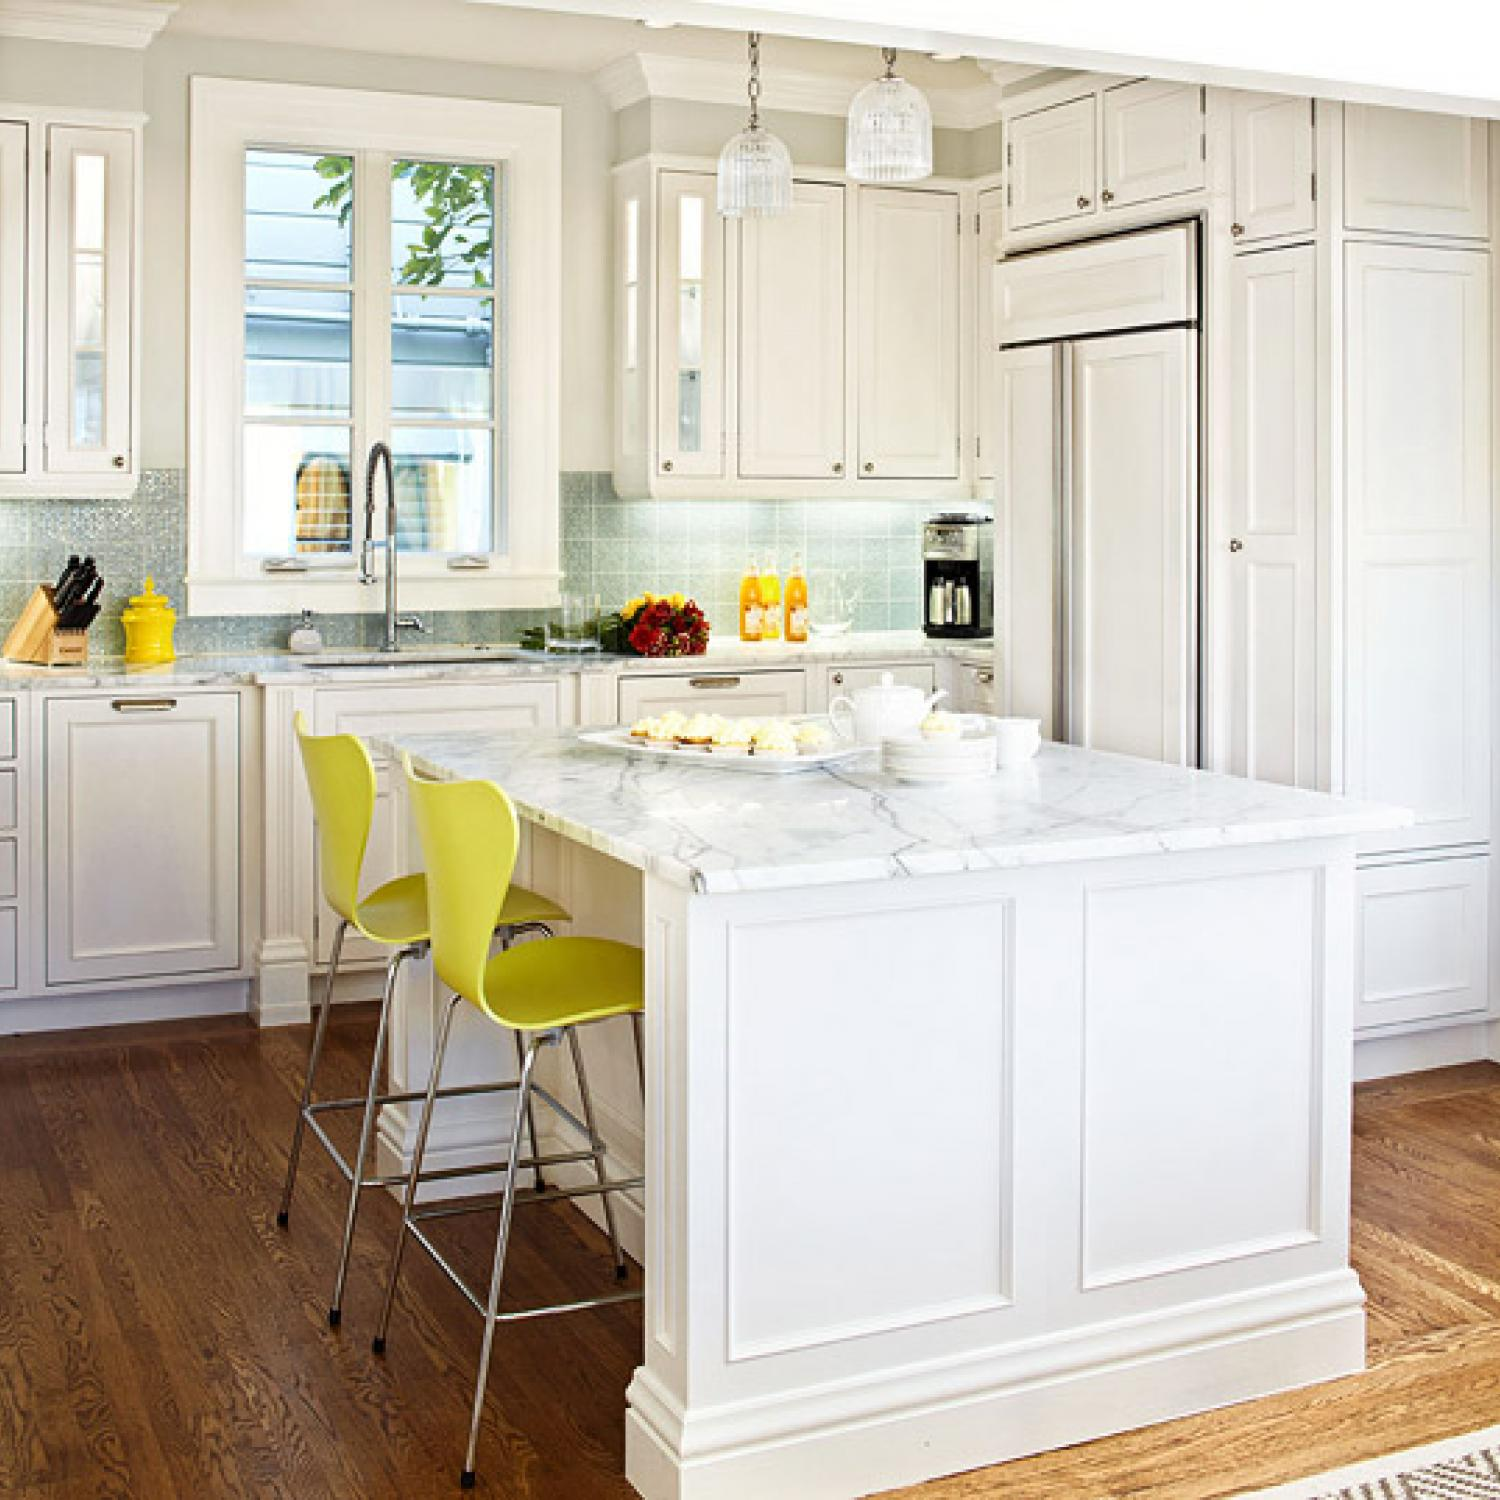 Design Ideas for White Kitchens | Traditional Home on white kitchens with granite countertops, white kitchen cabinets tile, white cabinets with white countertops, white cabinets green granite, white kitchen cabinets lighting, white appliances green countertops, white kitchen cabinets silestone, white kitchen cabinets green backsplash, white kitchen cabinets laminate, kitchen cabinets and countertops, kitchen ideas green countertops, brown kitchens with white countertops, 1950 green cabinets white countertops, white kitchen cabinets green walls, white kitchen cabinets granite, white kitchen cabinets green paint, green kitchen dark countertops, hgtv kitchens with green countertops, white kitchen cabinets soapstone counters, green granite kitchen countertops,